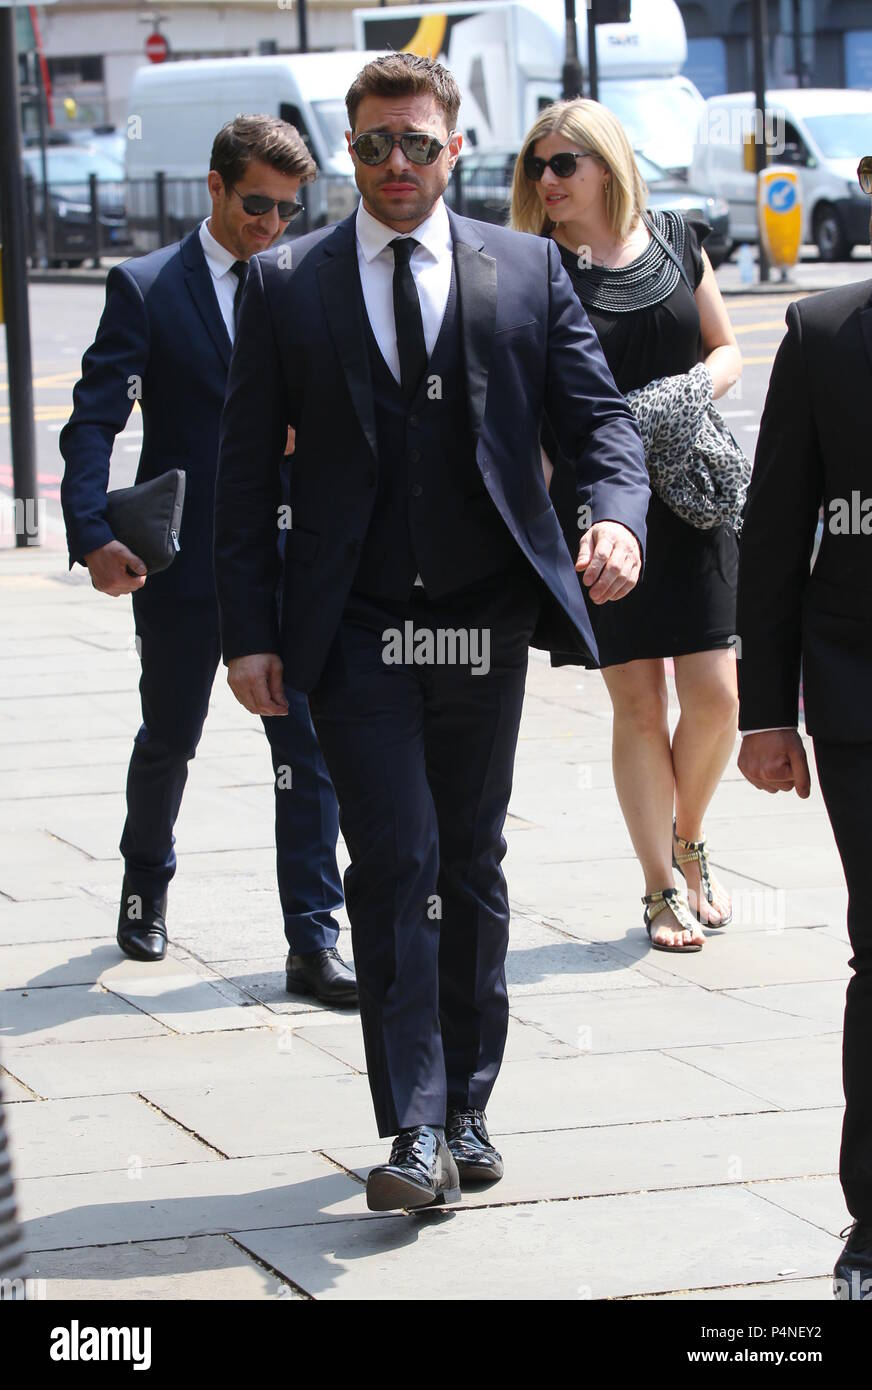 The funeral of Dale Winton at The Old Church in Marylebone